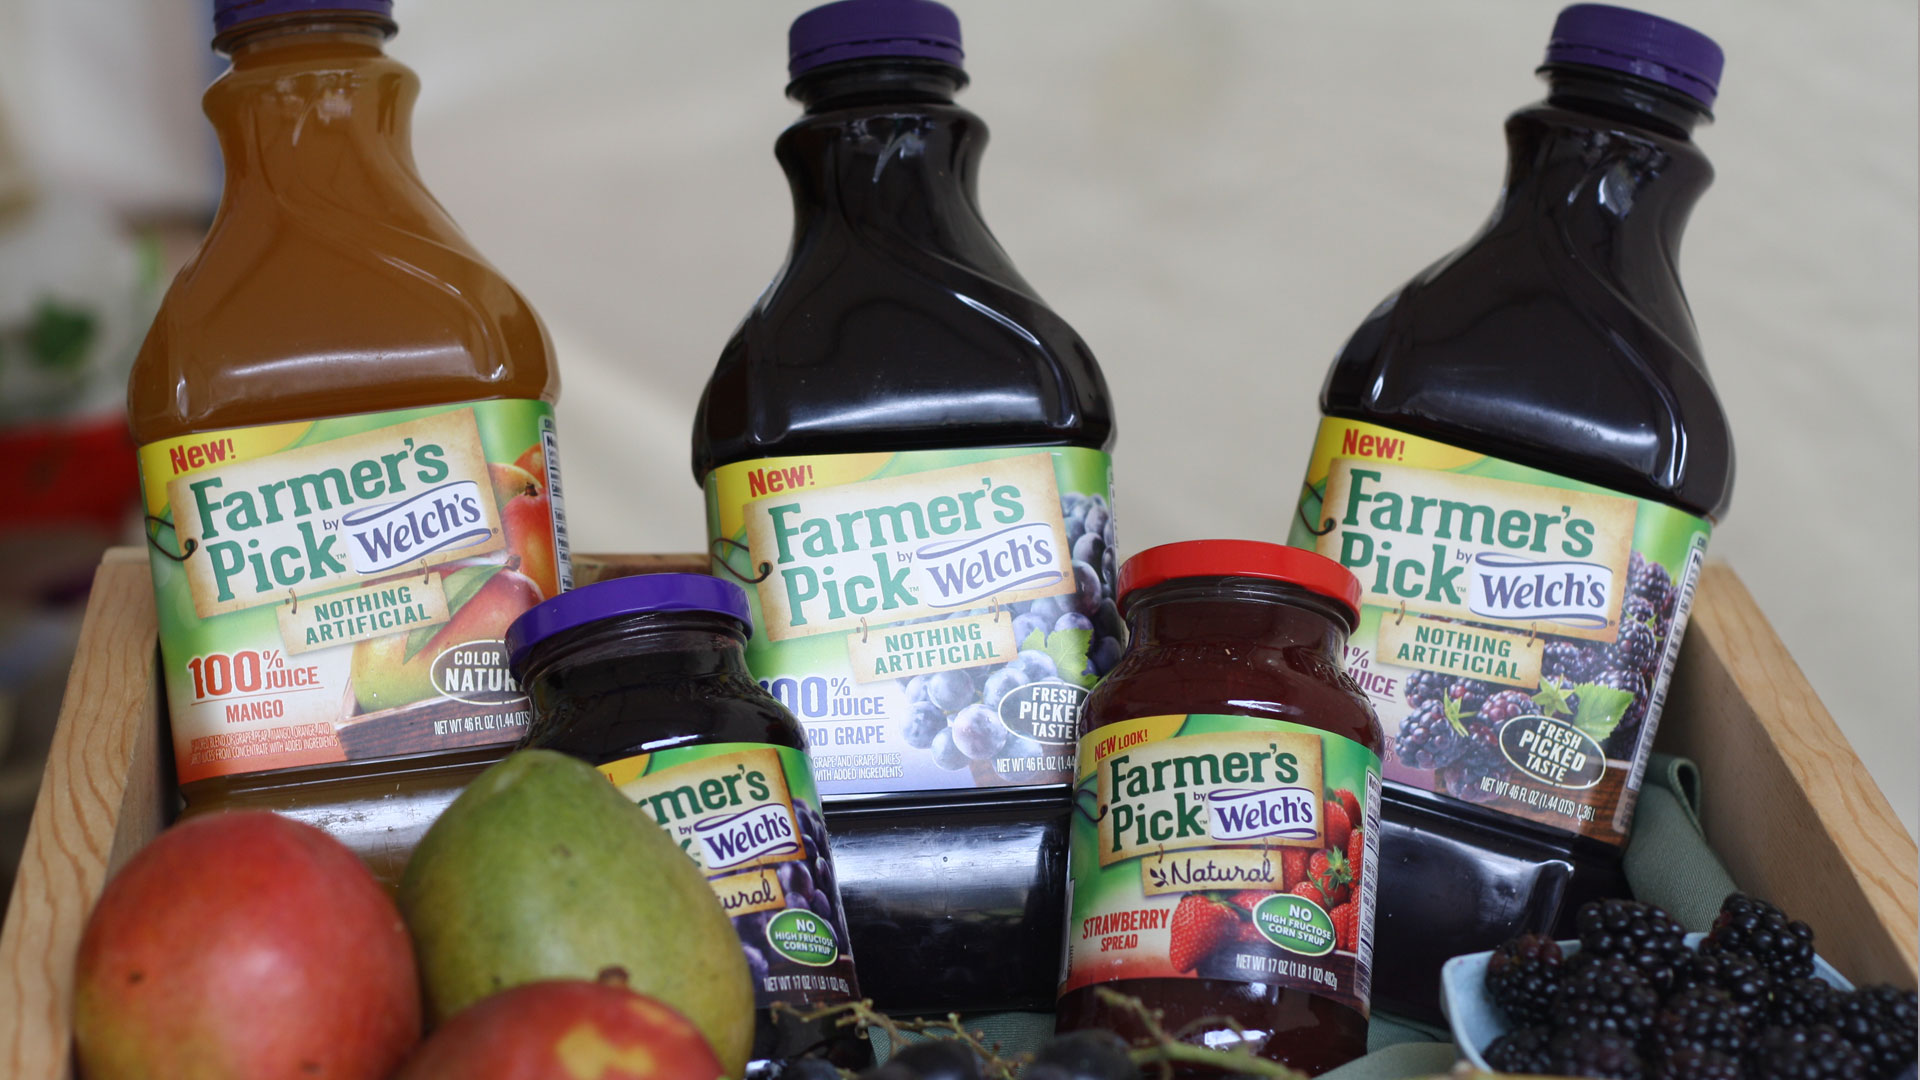 Farmer's Pick juices and spreads by Welch's